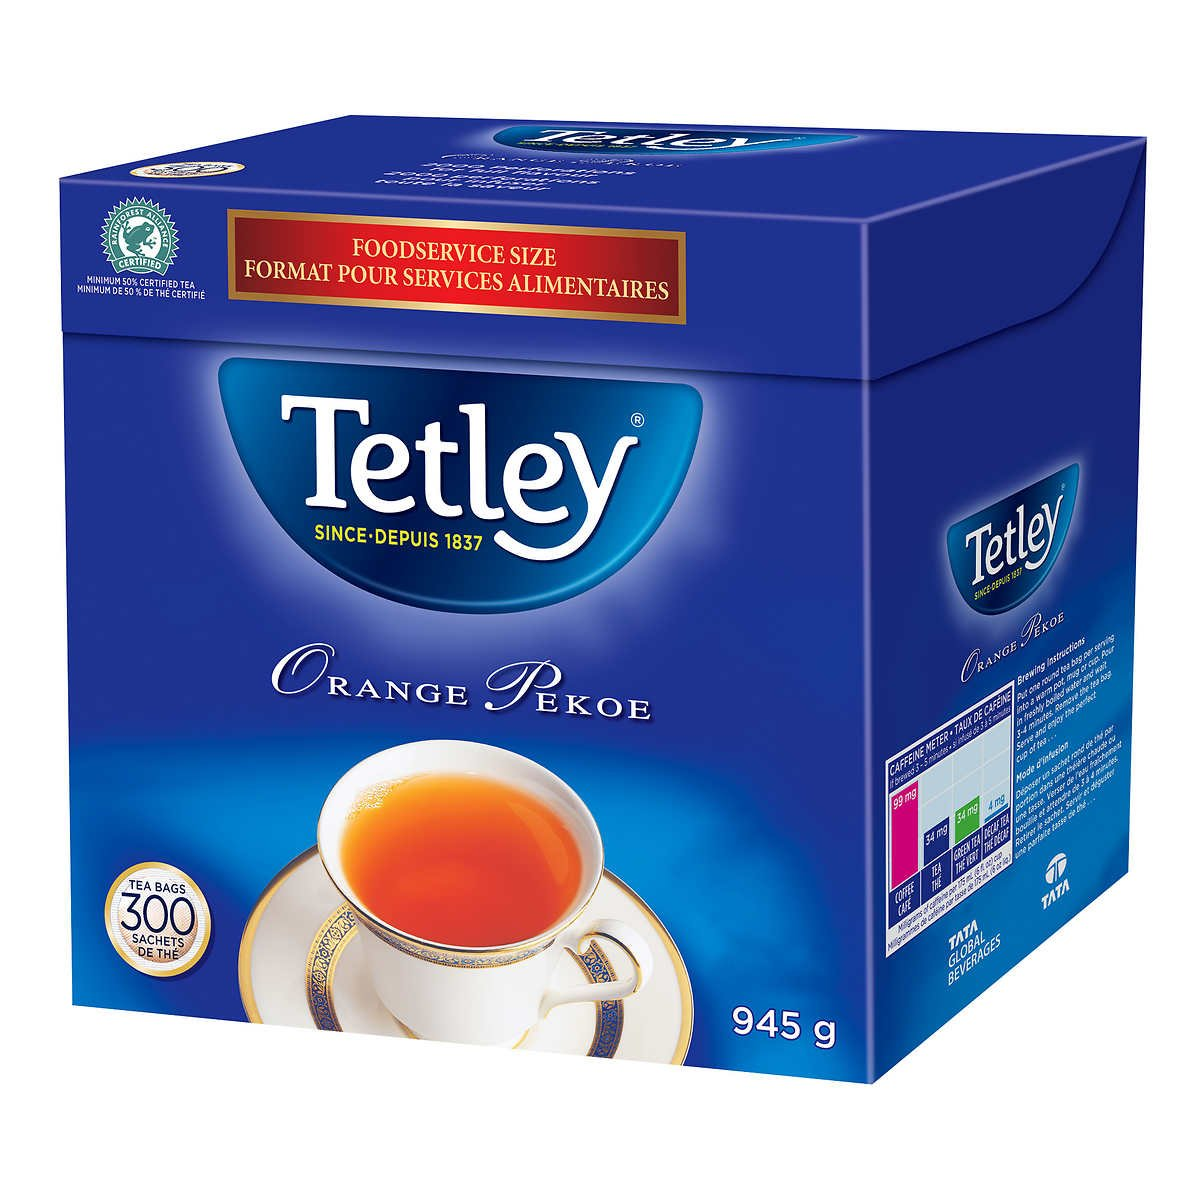 Tetley Tea, Orange Pekoe, Food Service Size 300 Count 945g Tea Bags